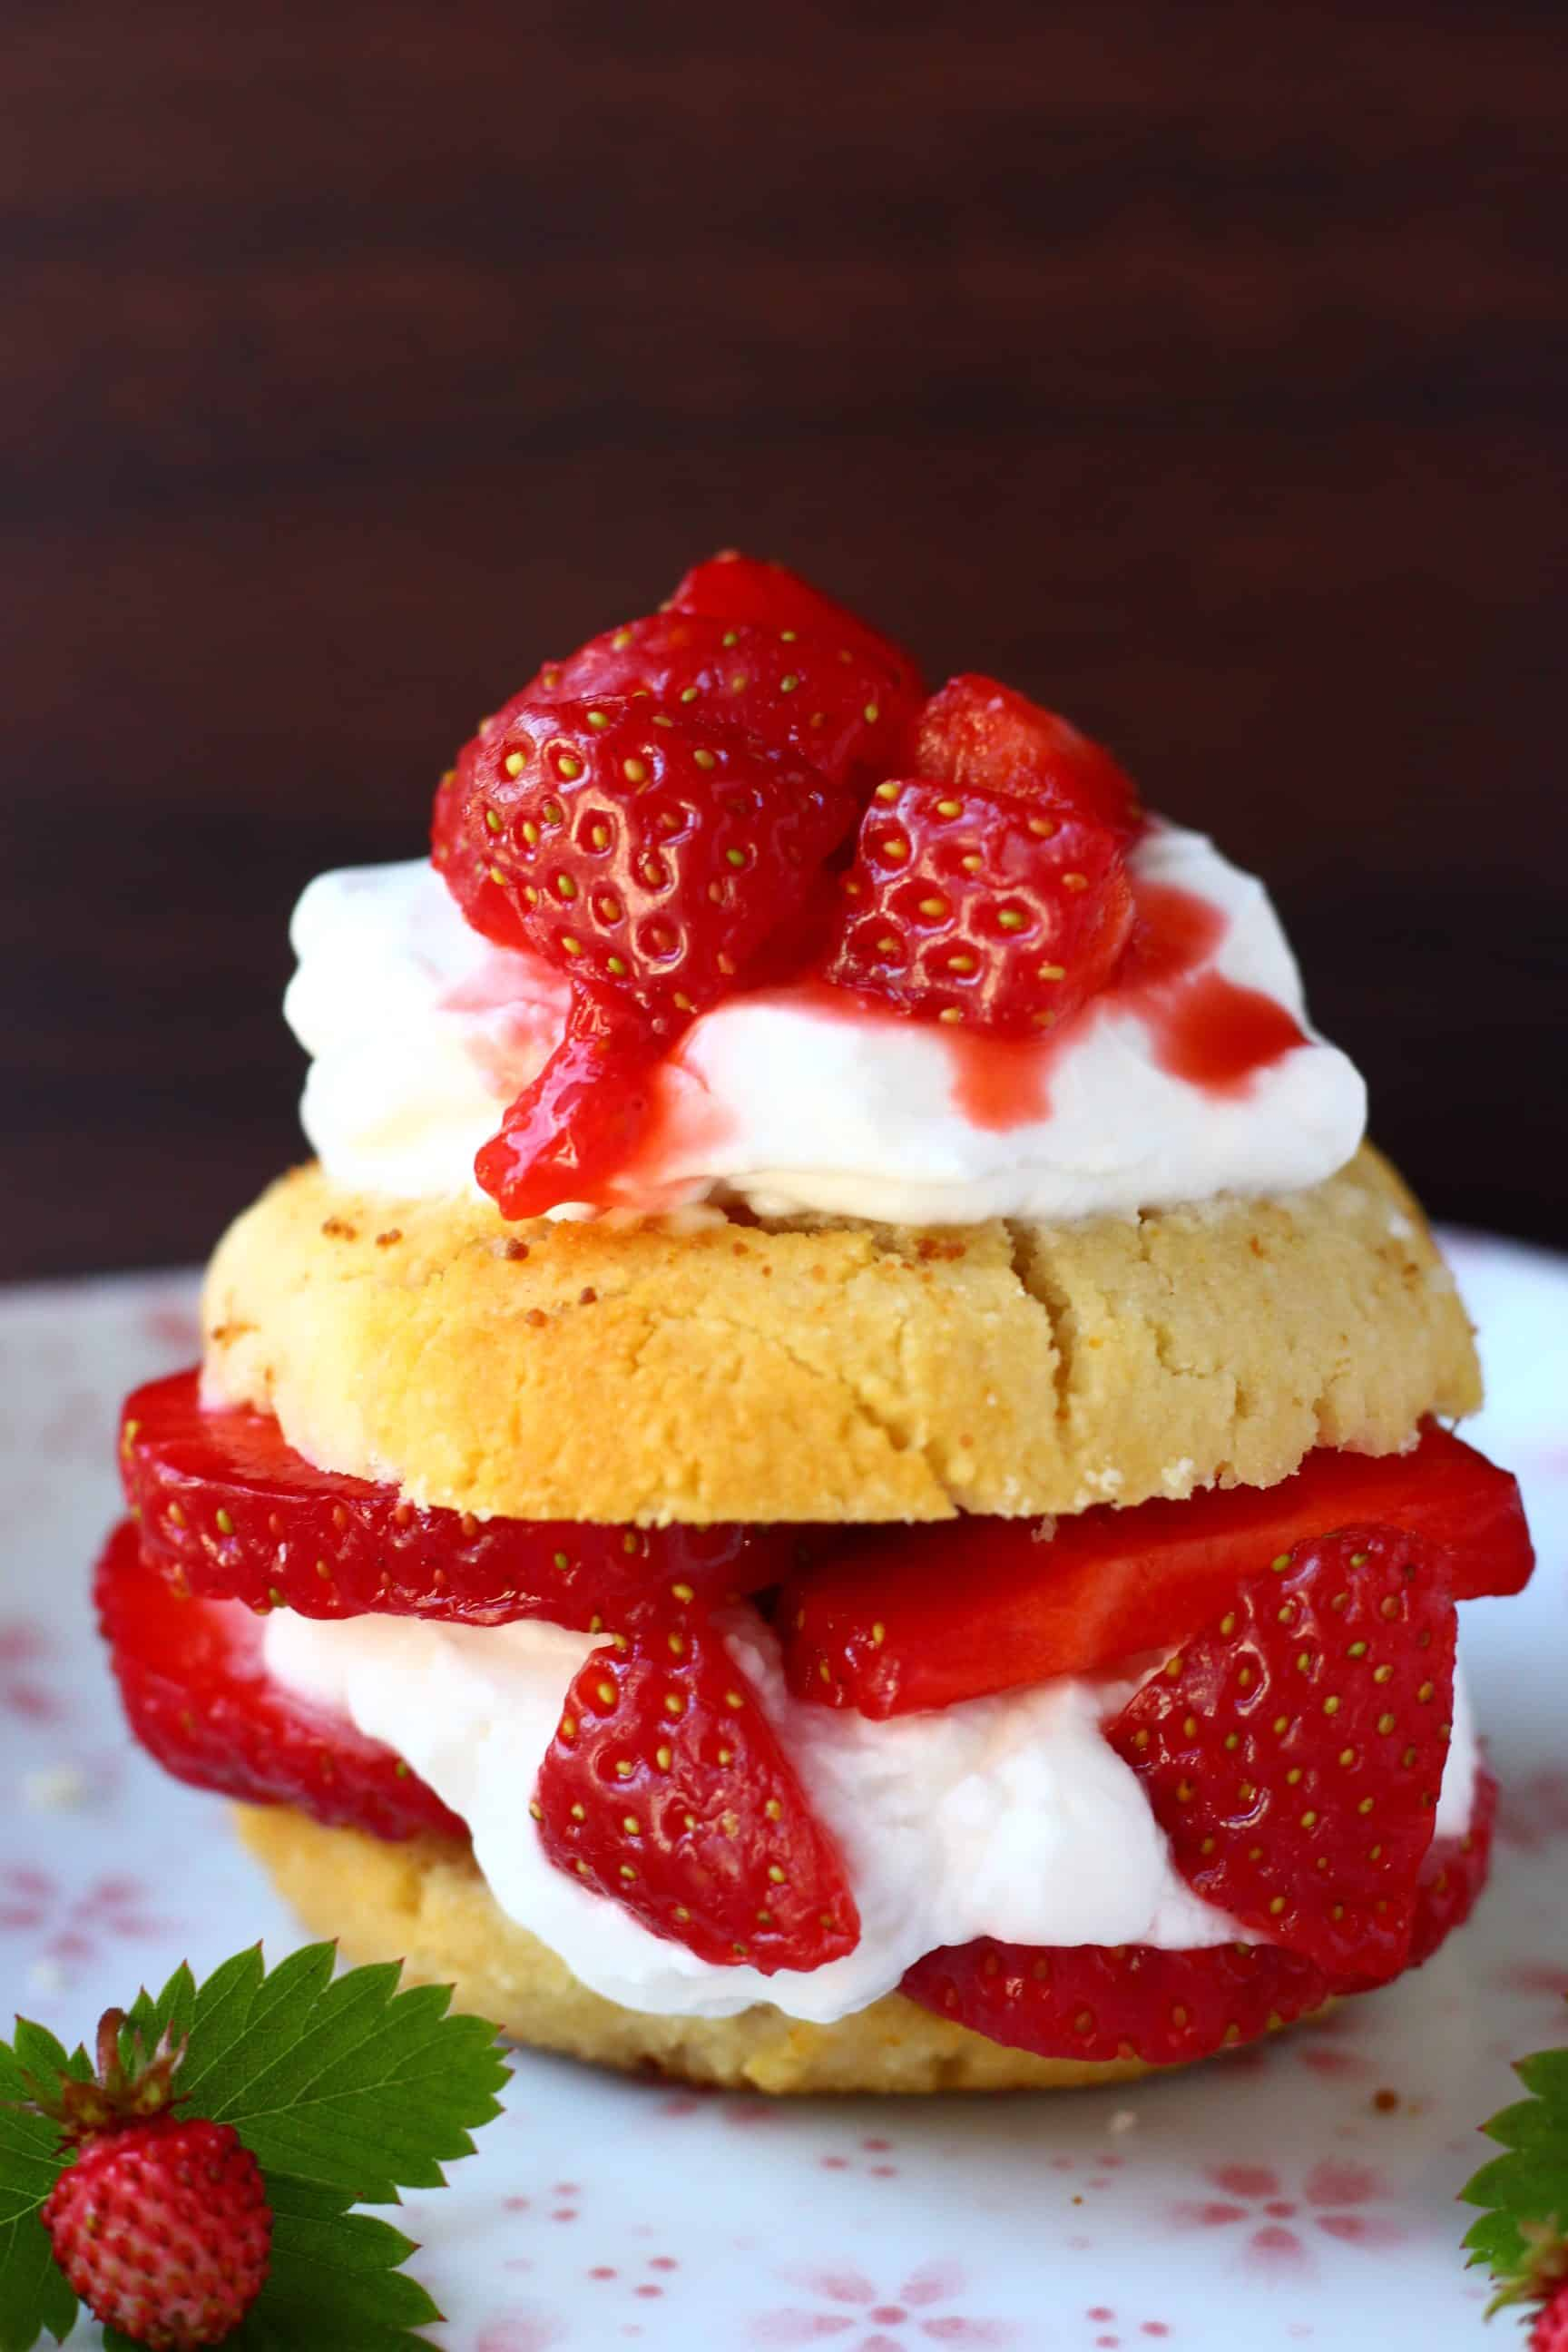 A gluten-free vegan strawberry shortcake sandwiched with coconut whipped cream and fresh strawberries on a plate